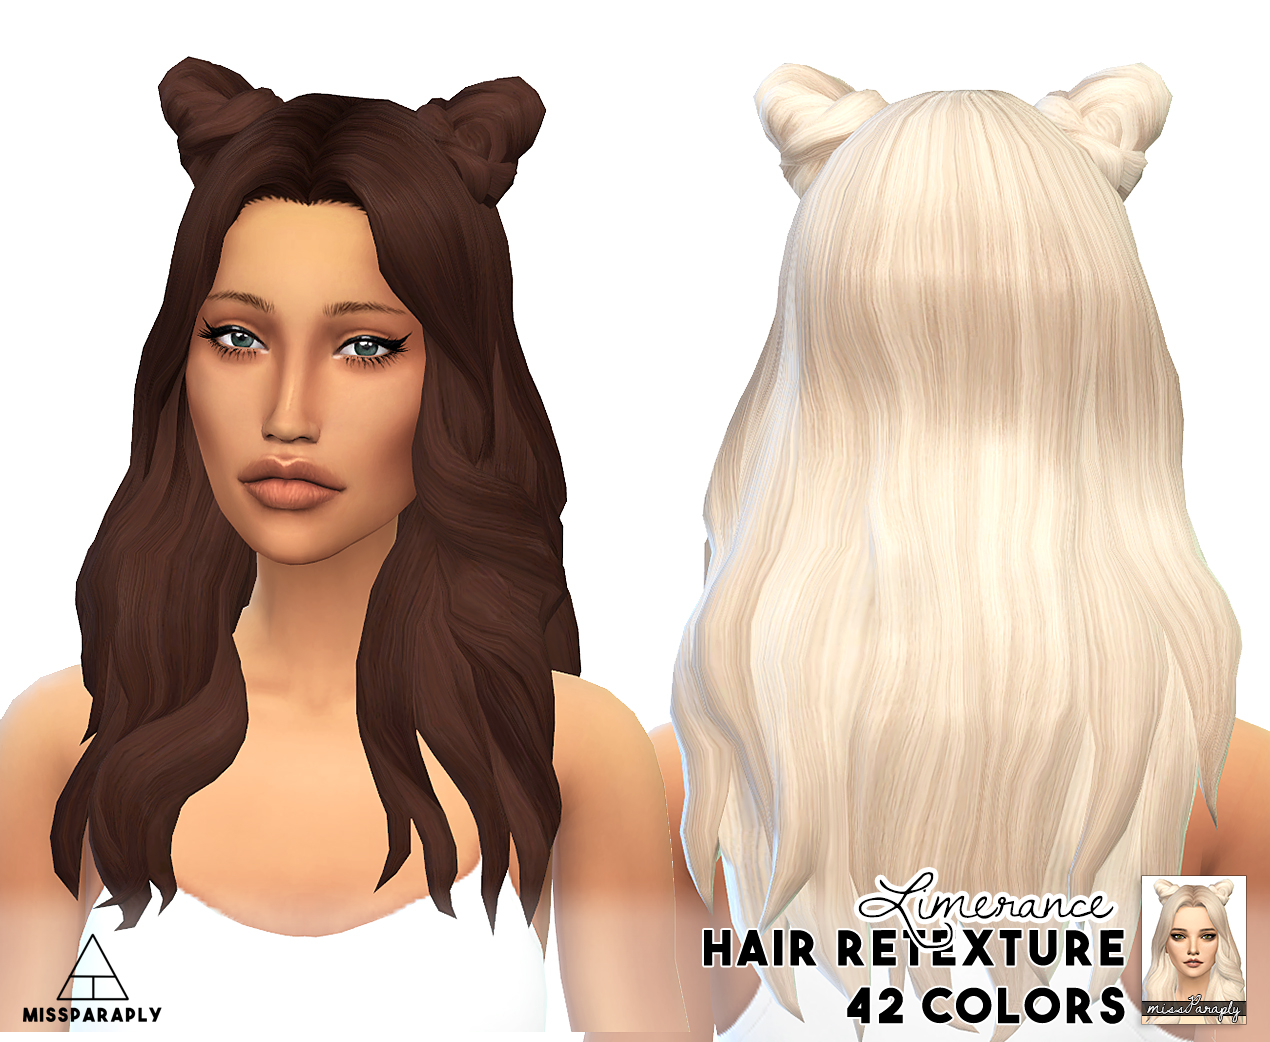 Sims 4 Hairs ~ Miss Paraply: 17 000 followers hairs ...